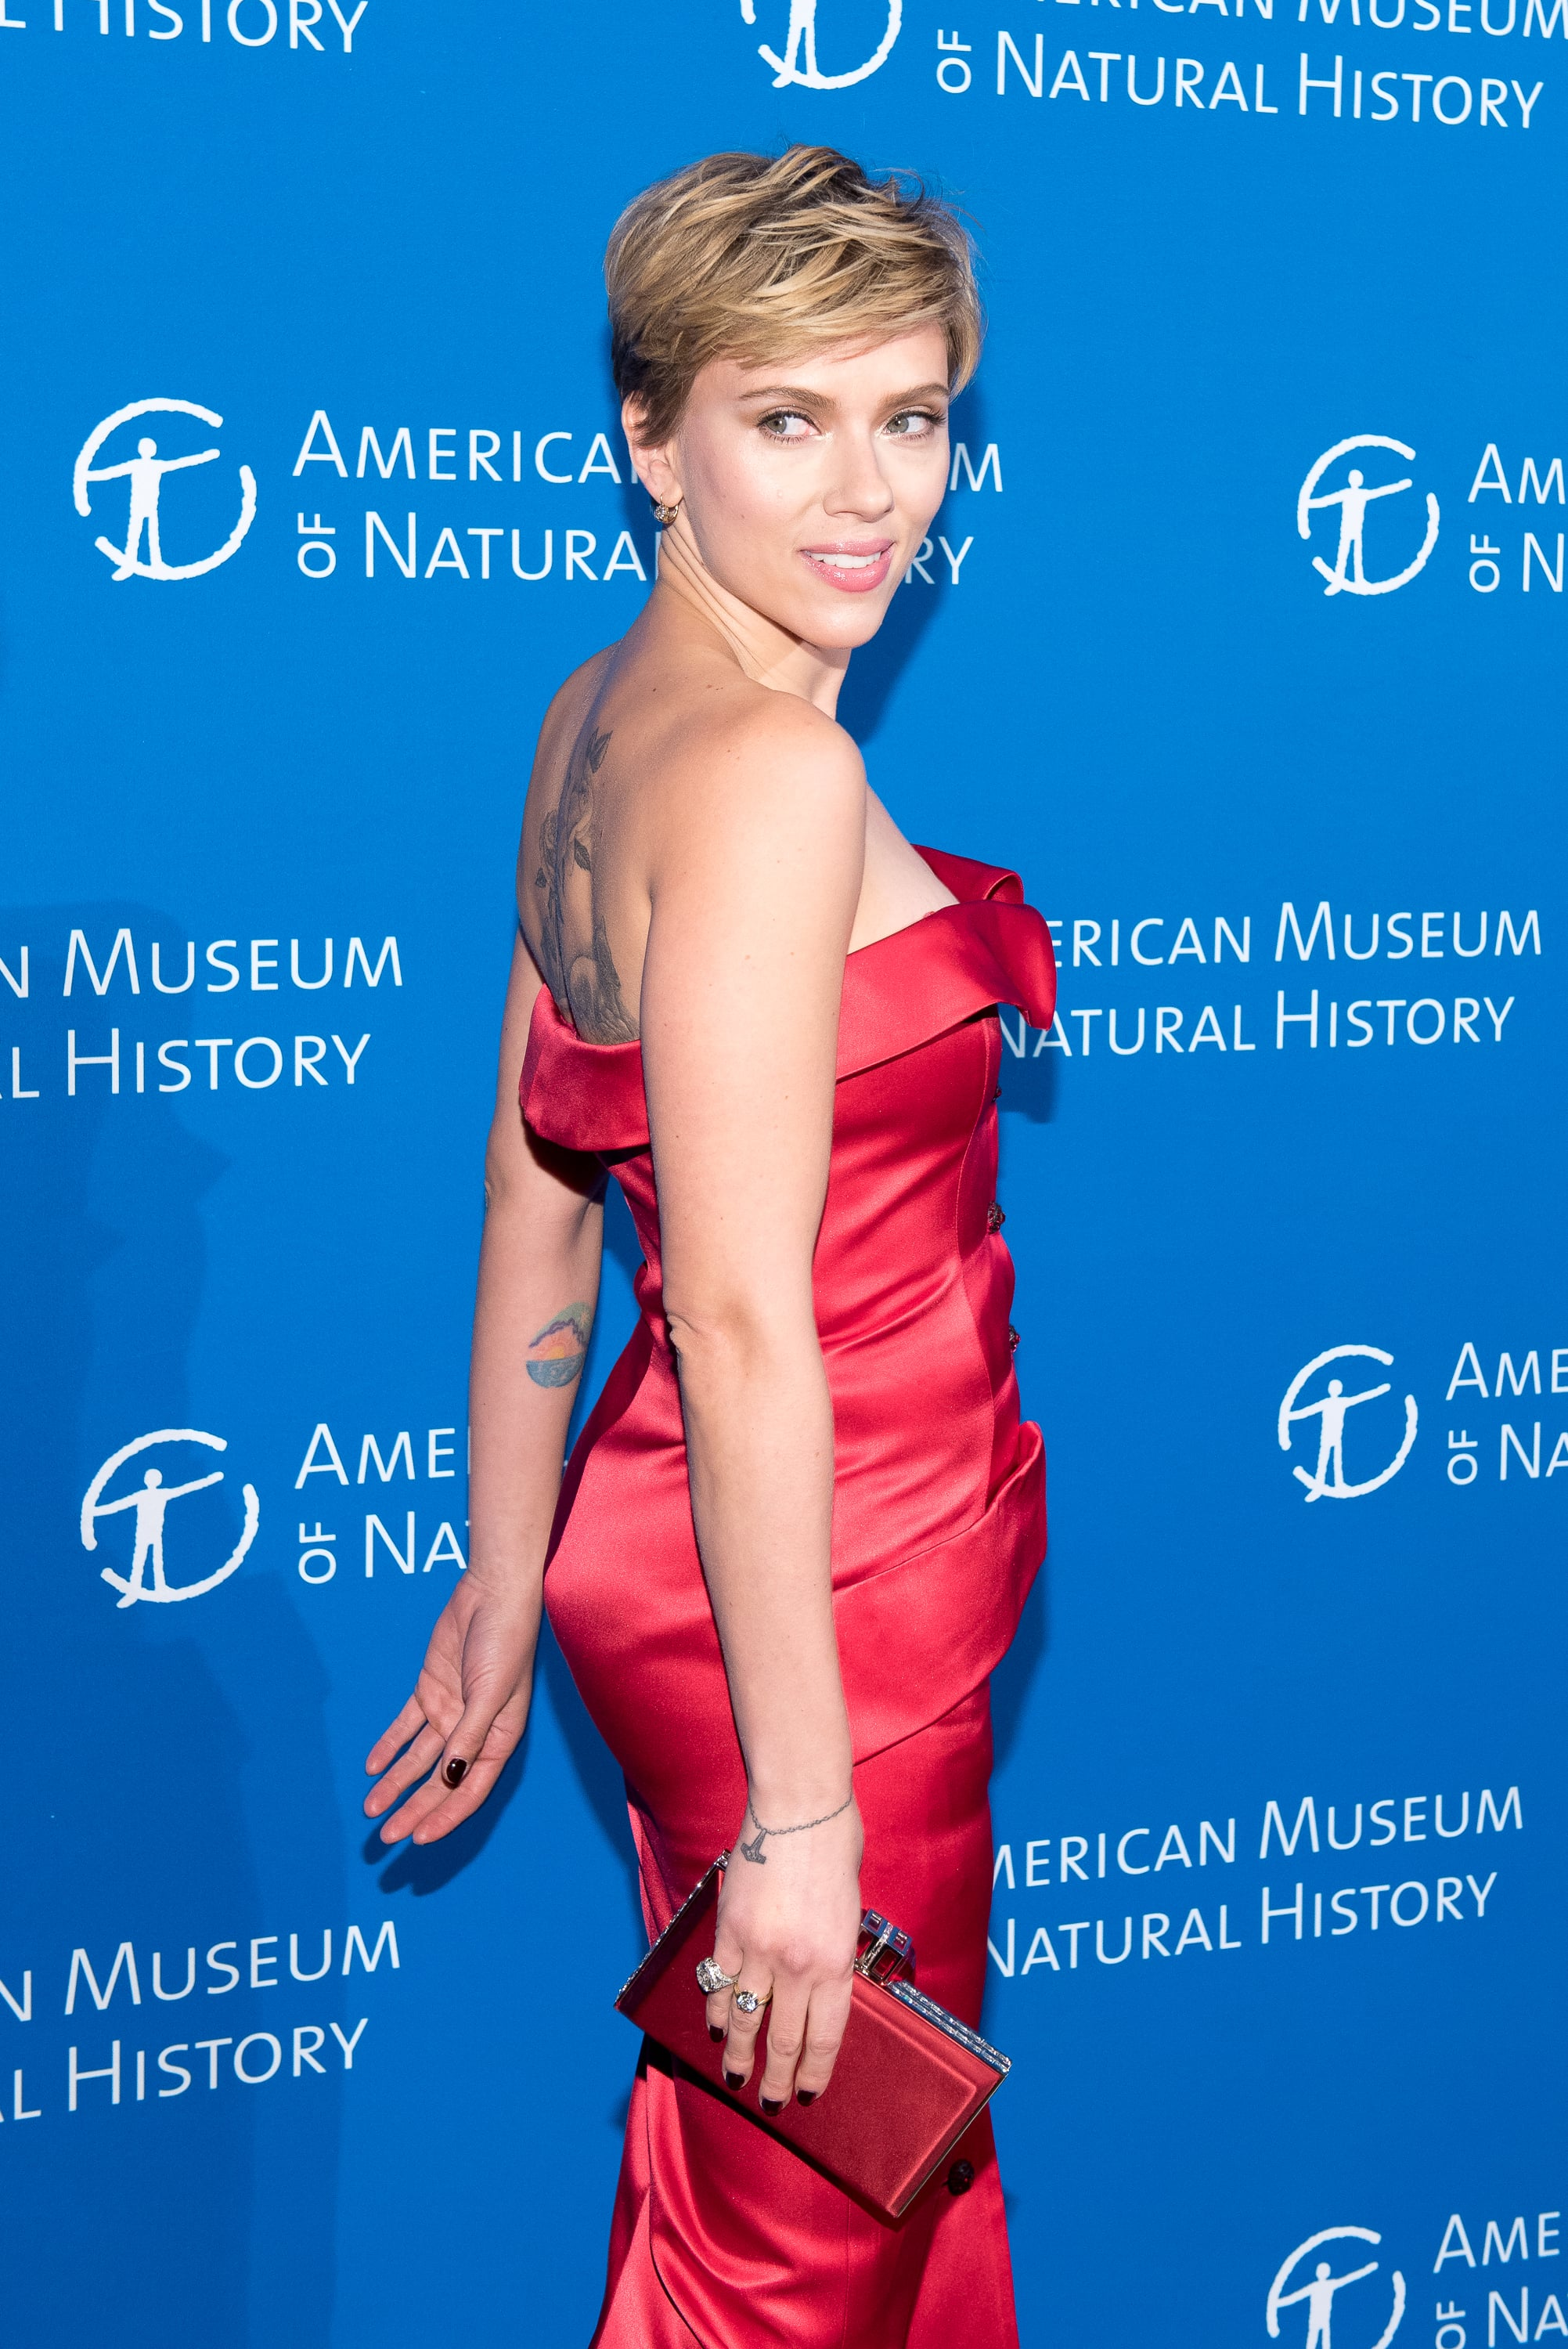 NEW YORK, NY - NOVEMBER 30:  Scarlett Johansson attends the 2017 American Museum of Natural History Museum Gala at the American Museum of Natural History on November 30, 2017 in New York City.  (Photo by Mike Pont/WireImage)